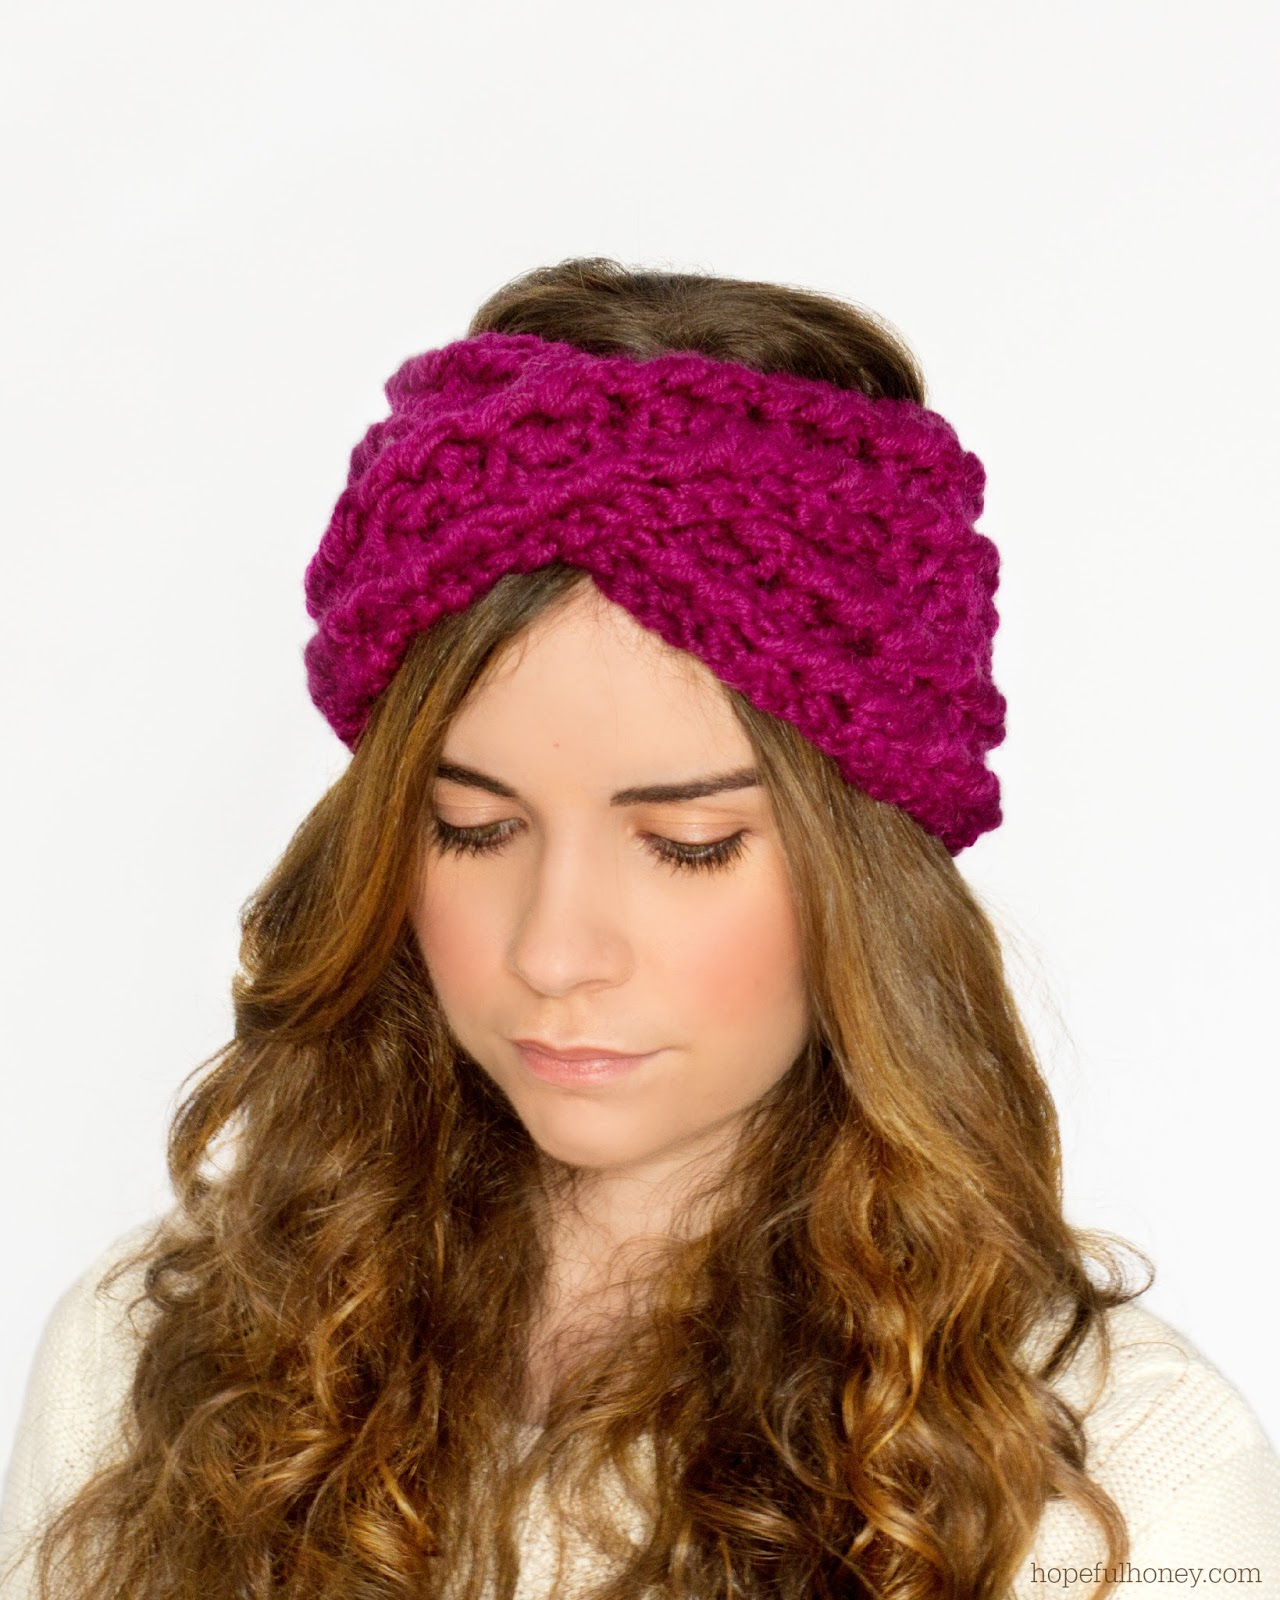 Knitting Patterns Headbands Ear Warmer 14 Cable Knitting Patterns The Funky Stitch